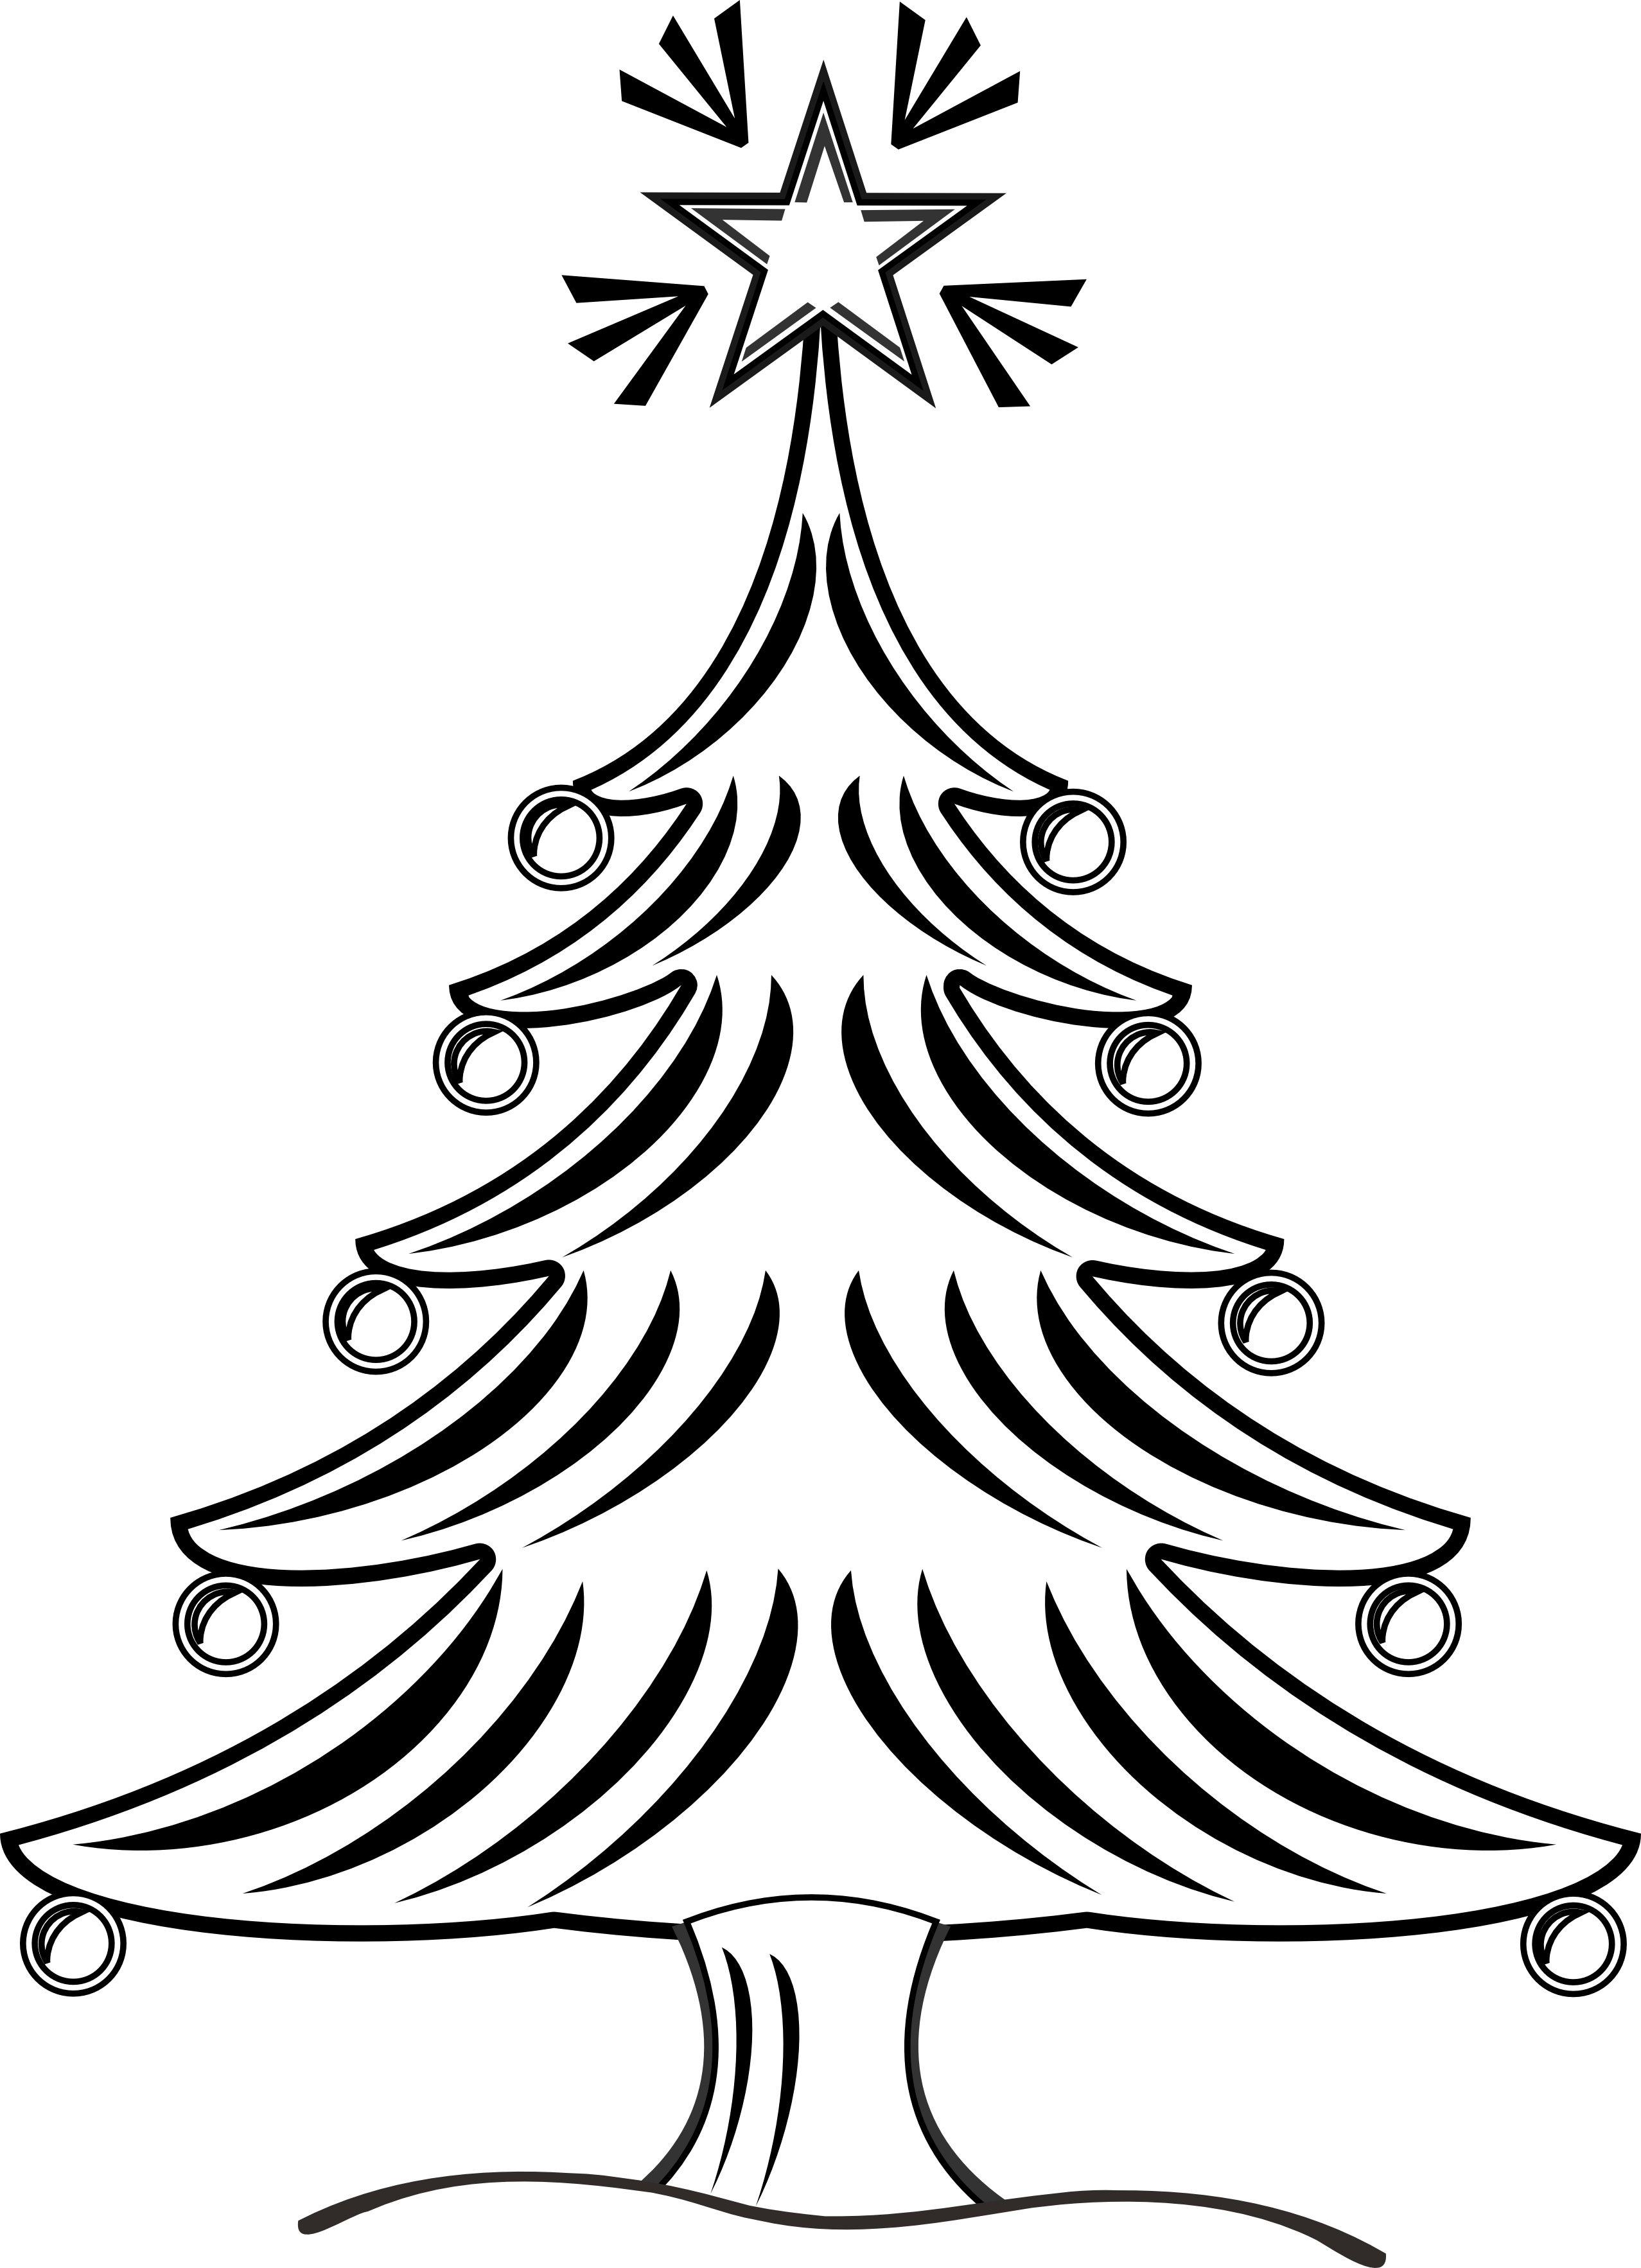 jpg black and white library Trees black and white clipart. Tree drawing at getdrawings